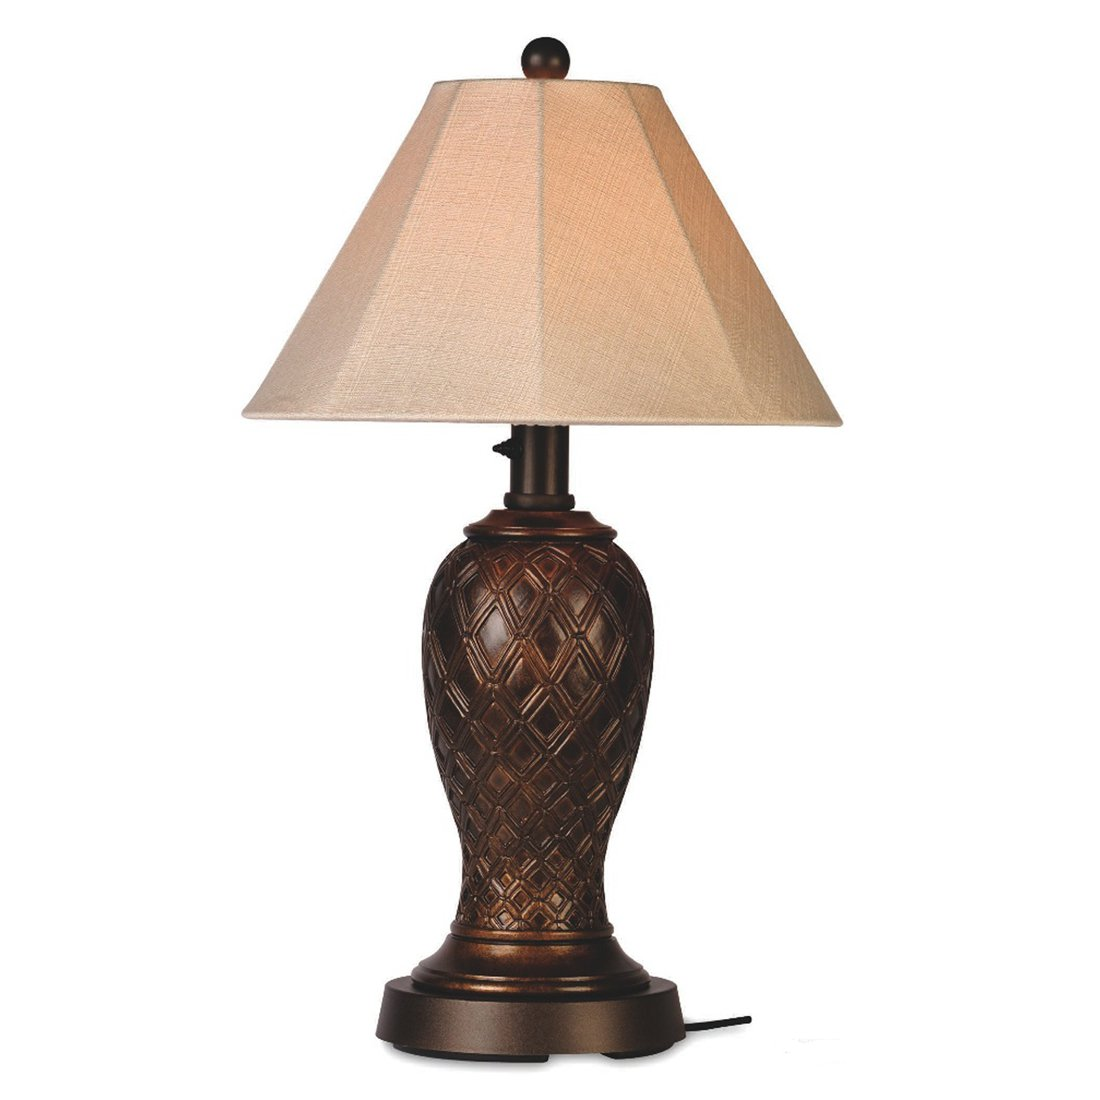 Patio Living Concepts Monterey 34 Inch Outdoor Table Lamp w  Antique Beige Linen Sunbrella Shade by Patio Living Concepts